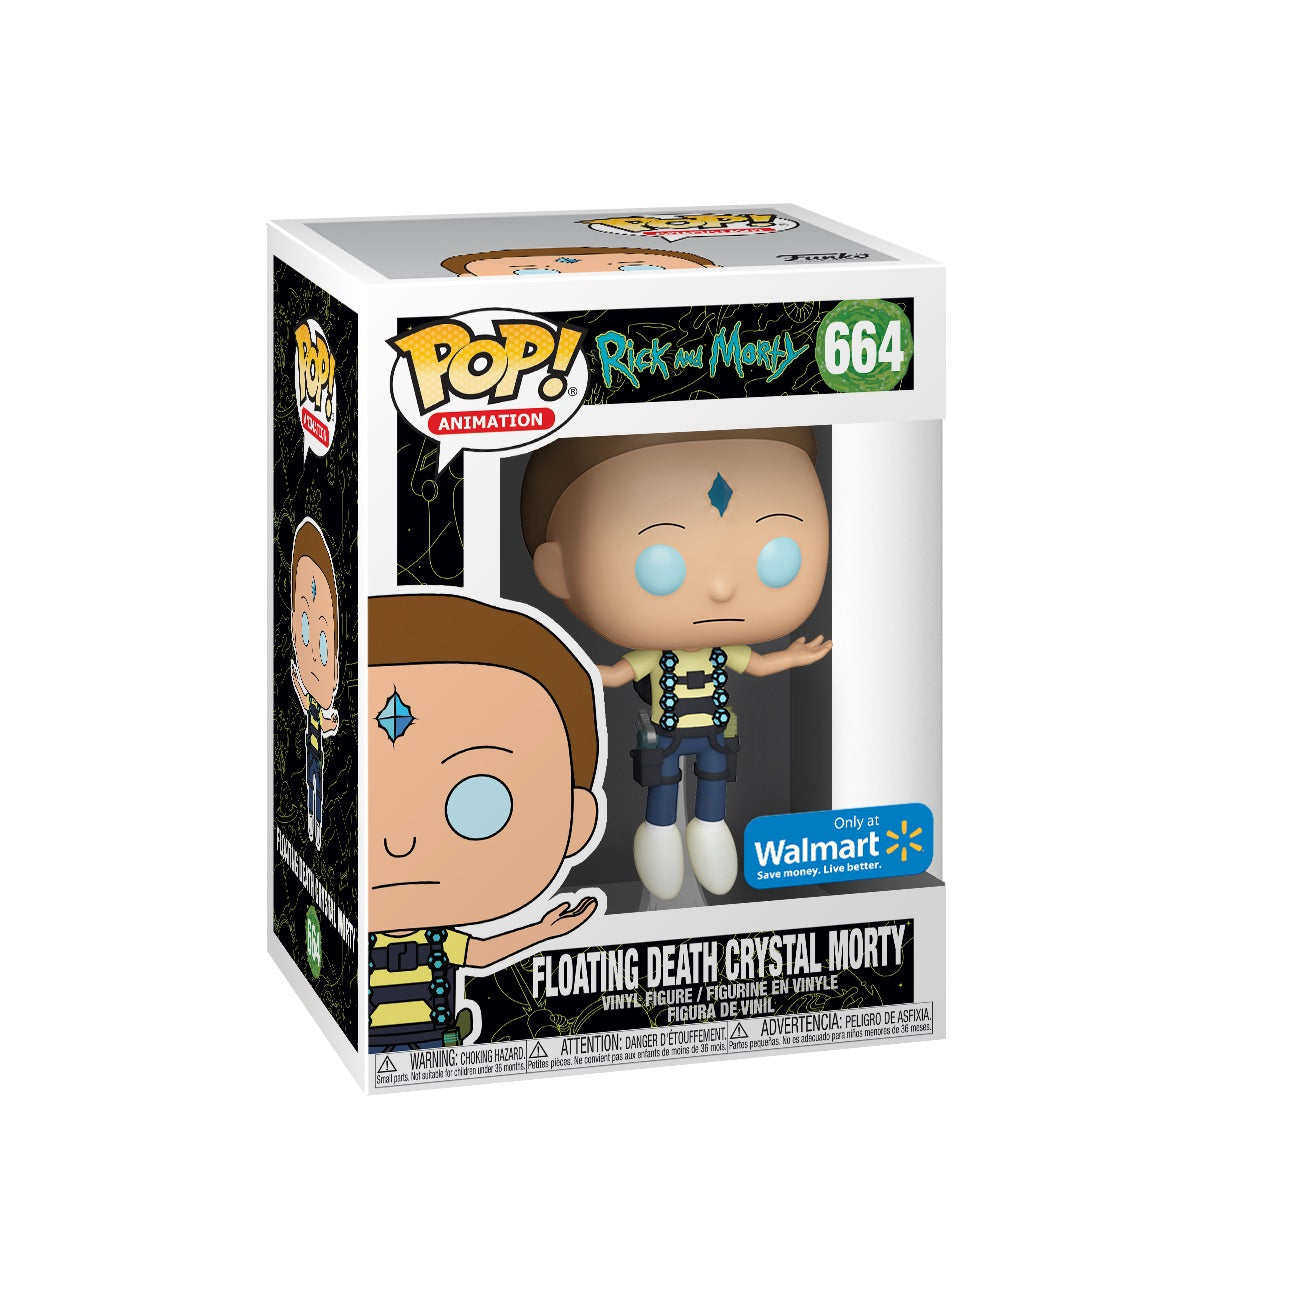 Rick and Morty Floating Death Crystal Morty Exclusive